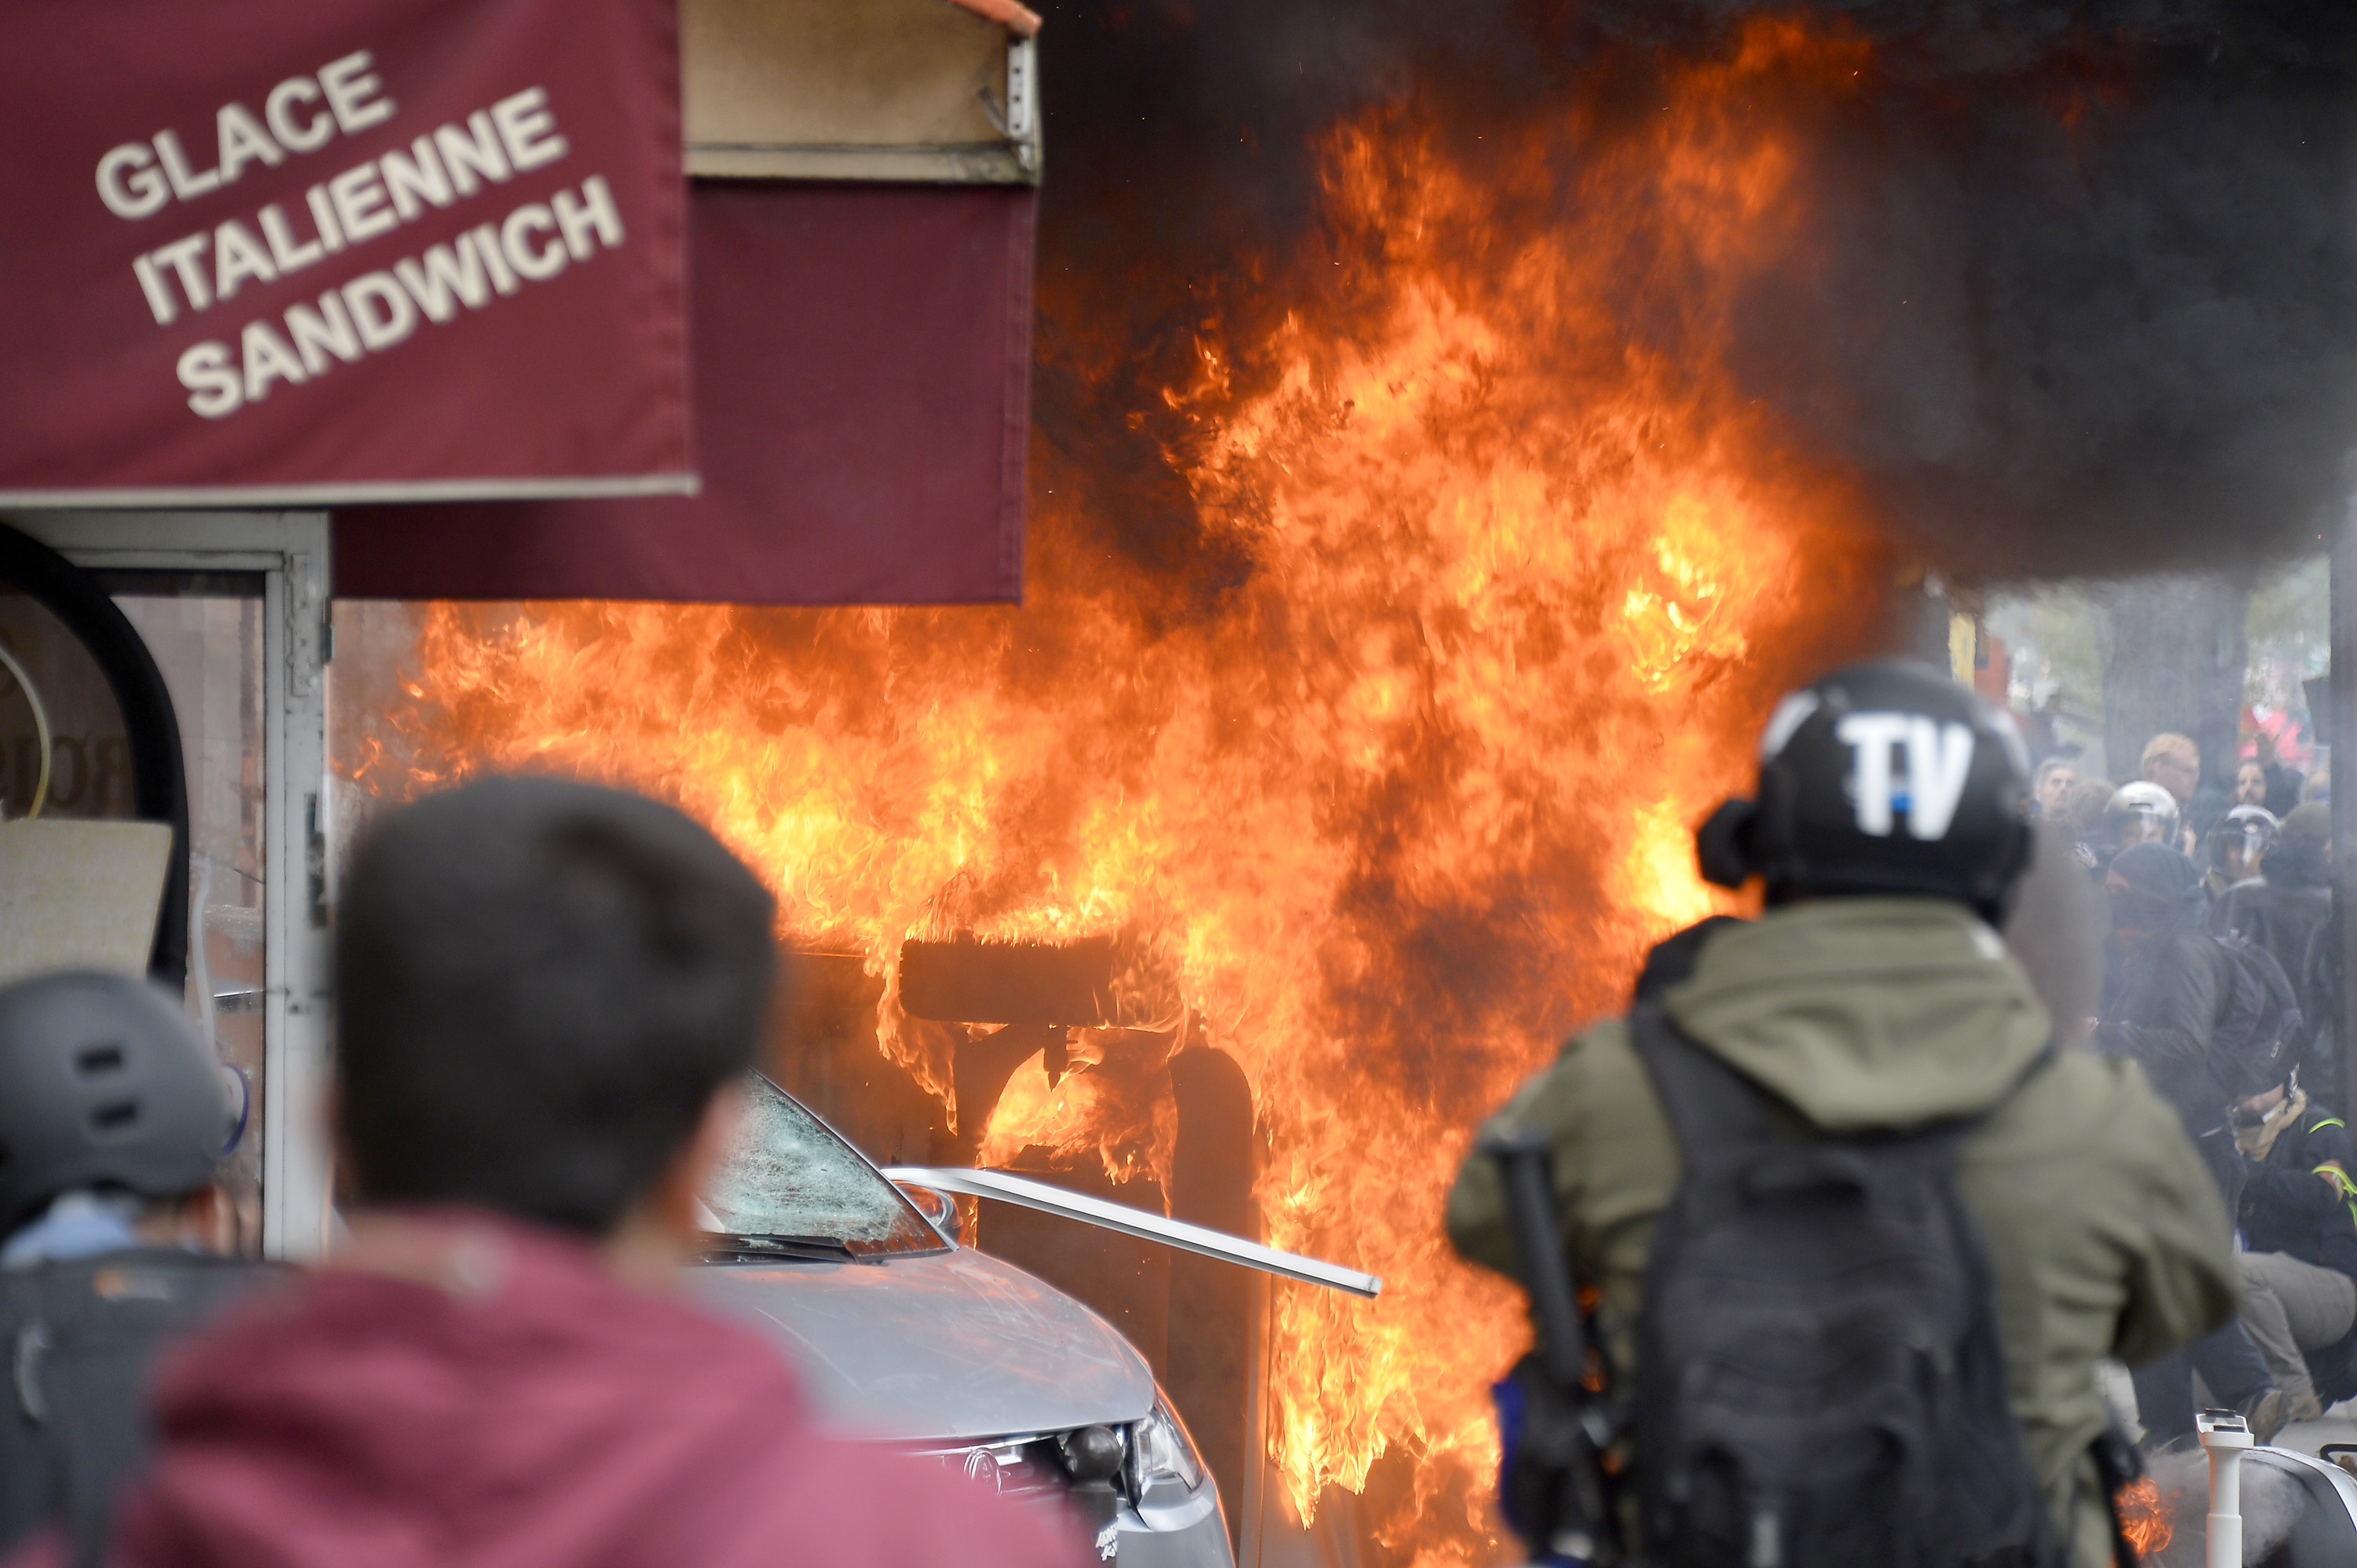 Paris Burns As Rioters Attack Buildings And Vehicles On May Day